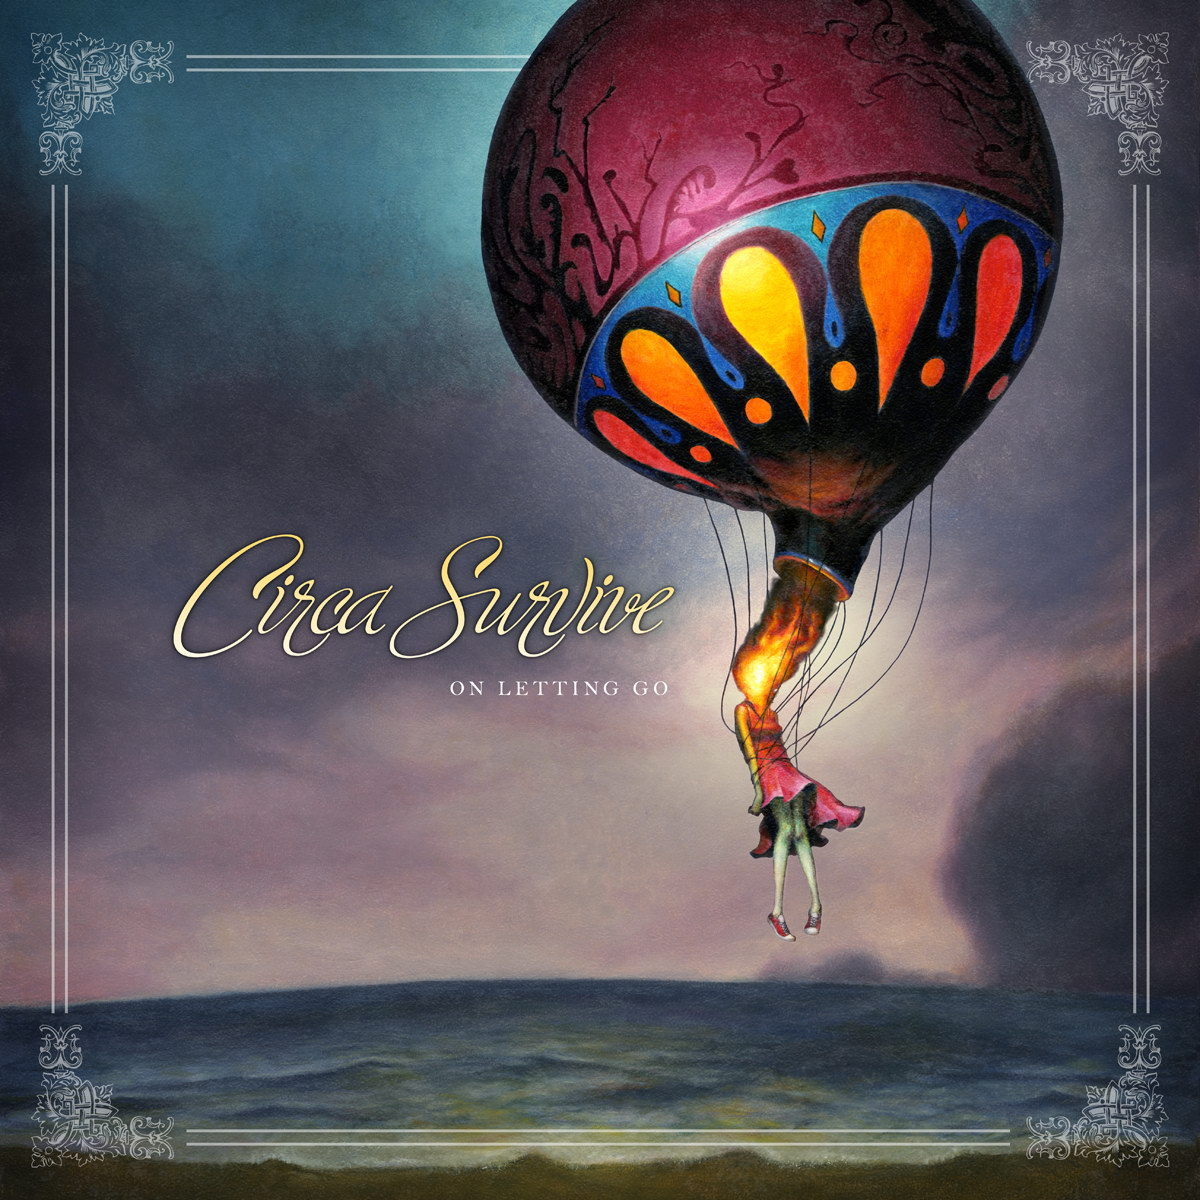 Circa Survive – On Letting Go